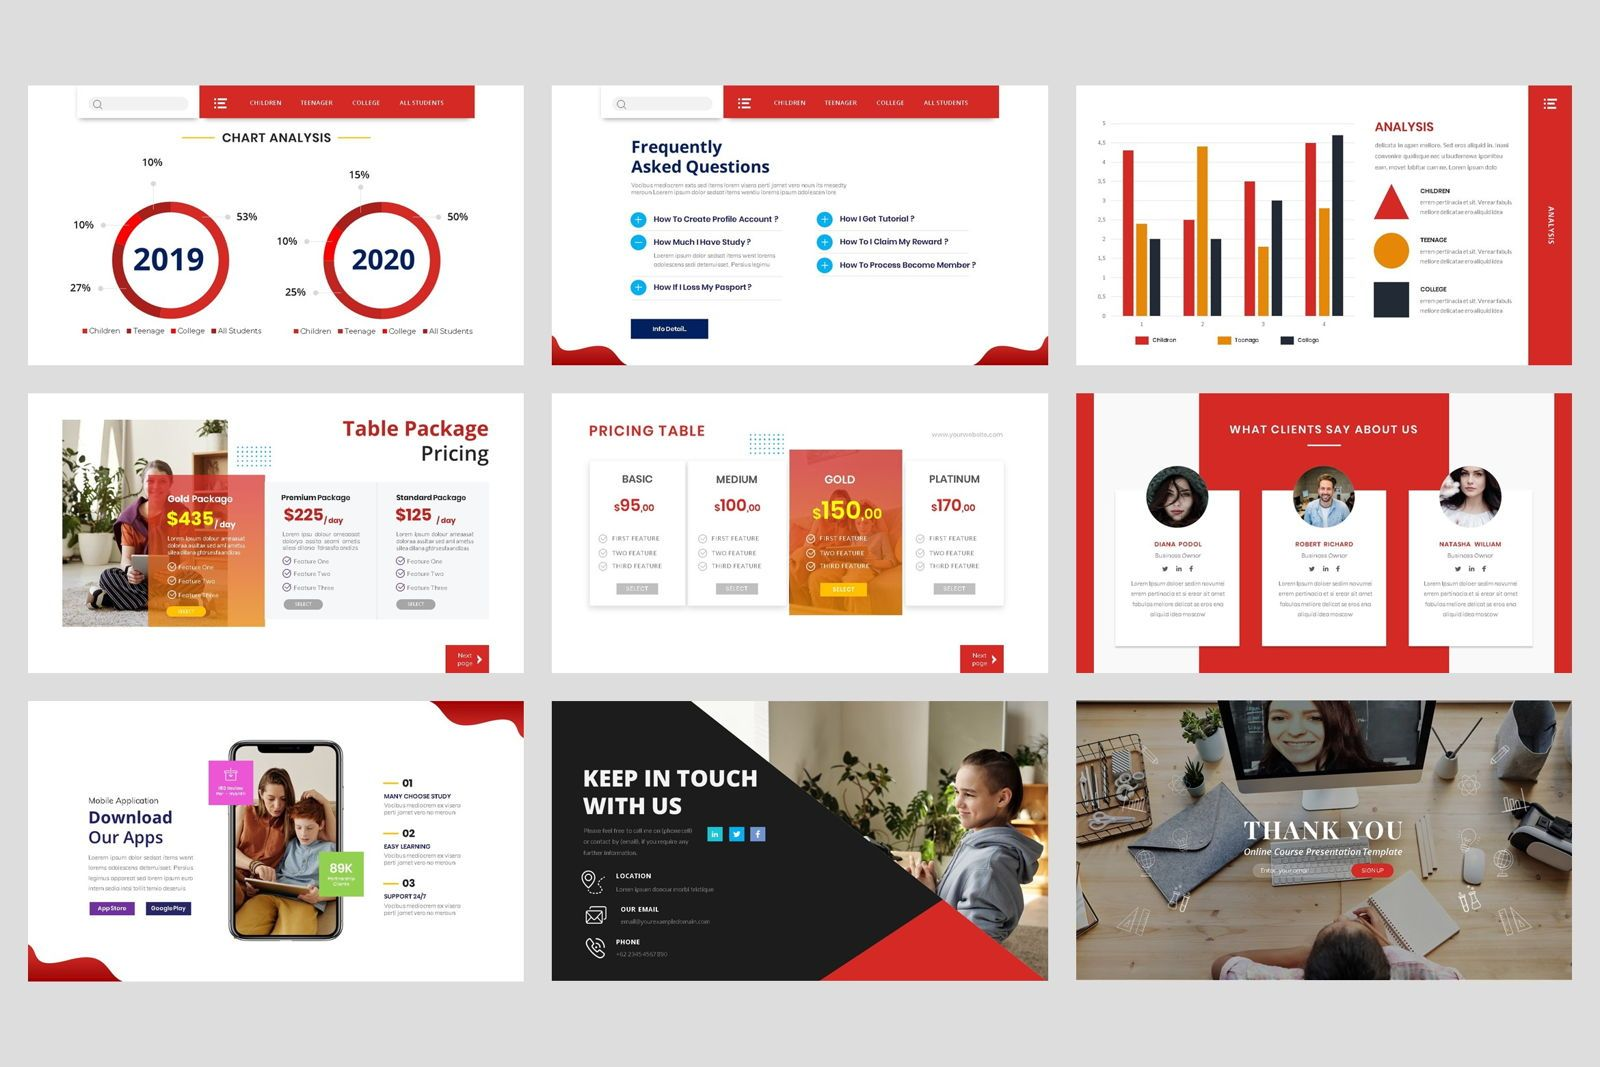 Online Course - Education PowerPoint Template, Slide 5, 08606, Presentation Templates — PoweredTemplate.com